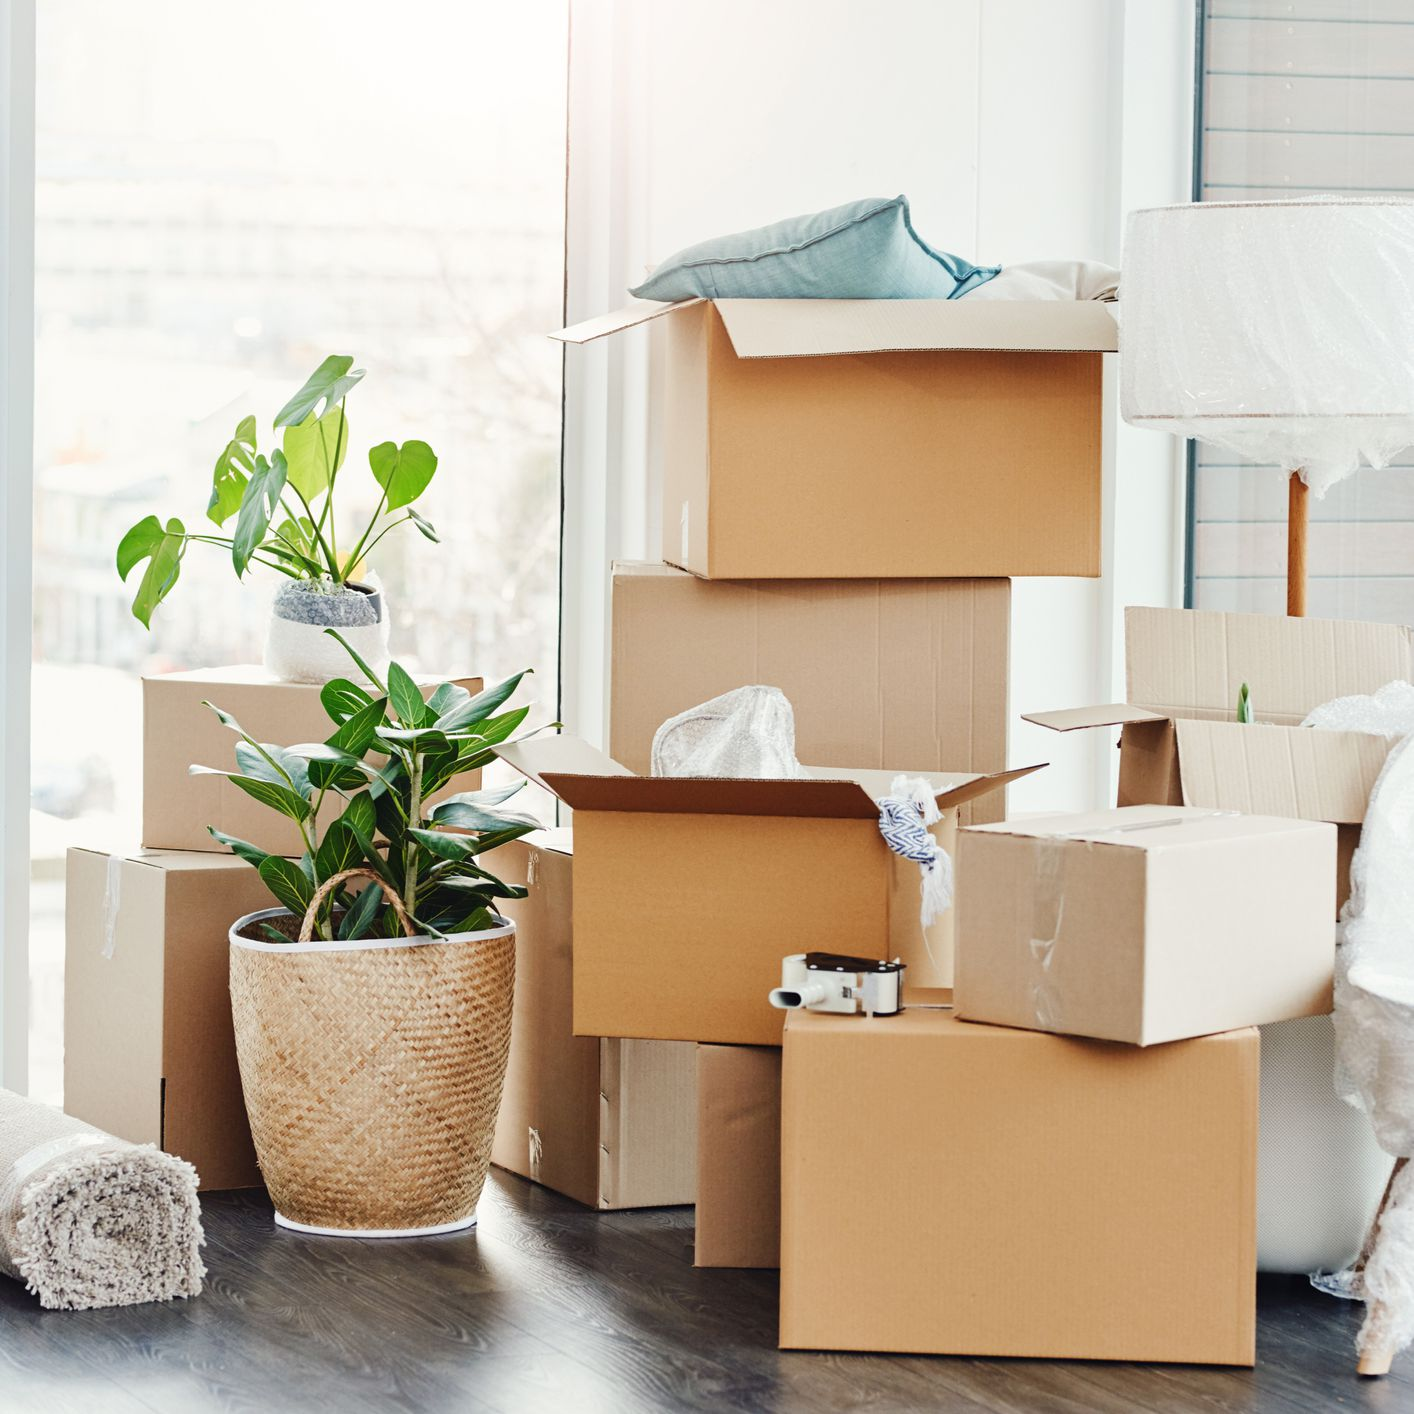 The Forgotten 5: What Not To Forget When You Move Home